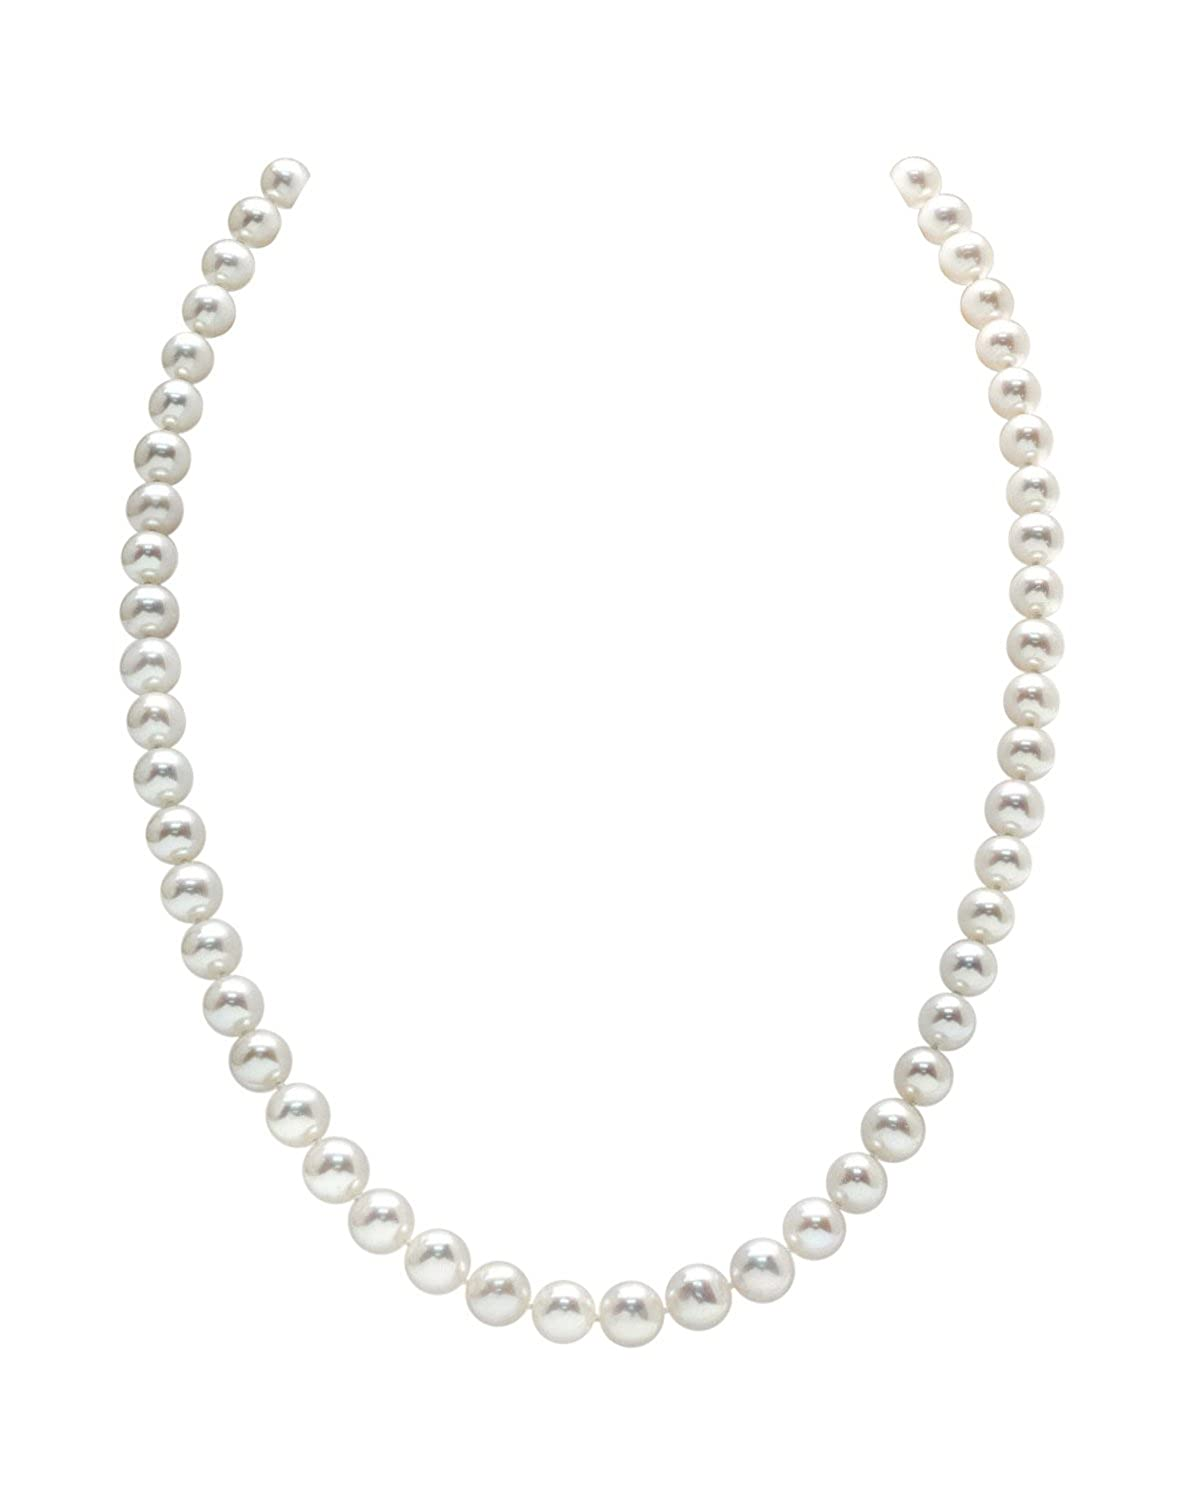 THE PEARL SOURCE 14K Gold 7-8mm AAAA Quality White Freshwater Cultured Pearl Necklace for Women in 17 Princess Length 78-FW-Rs